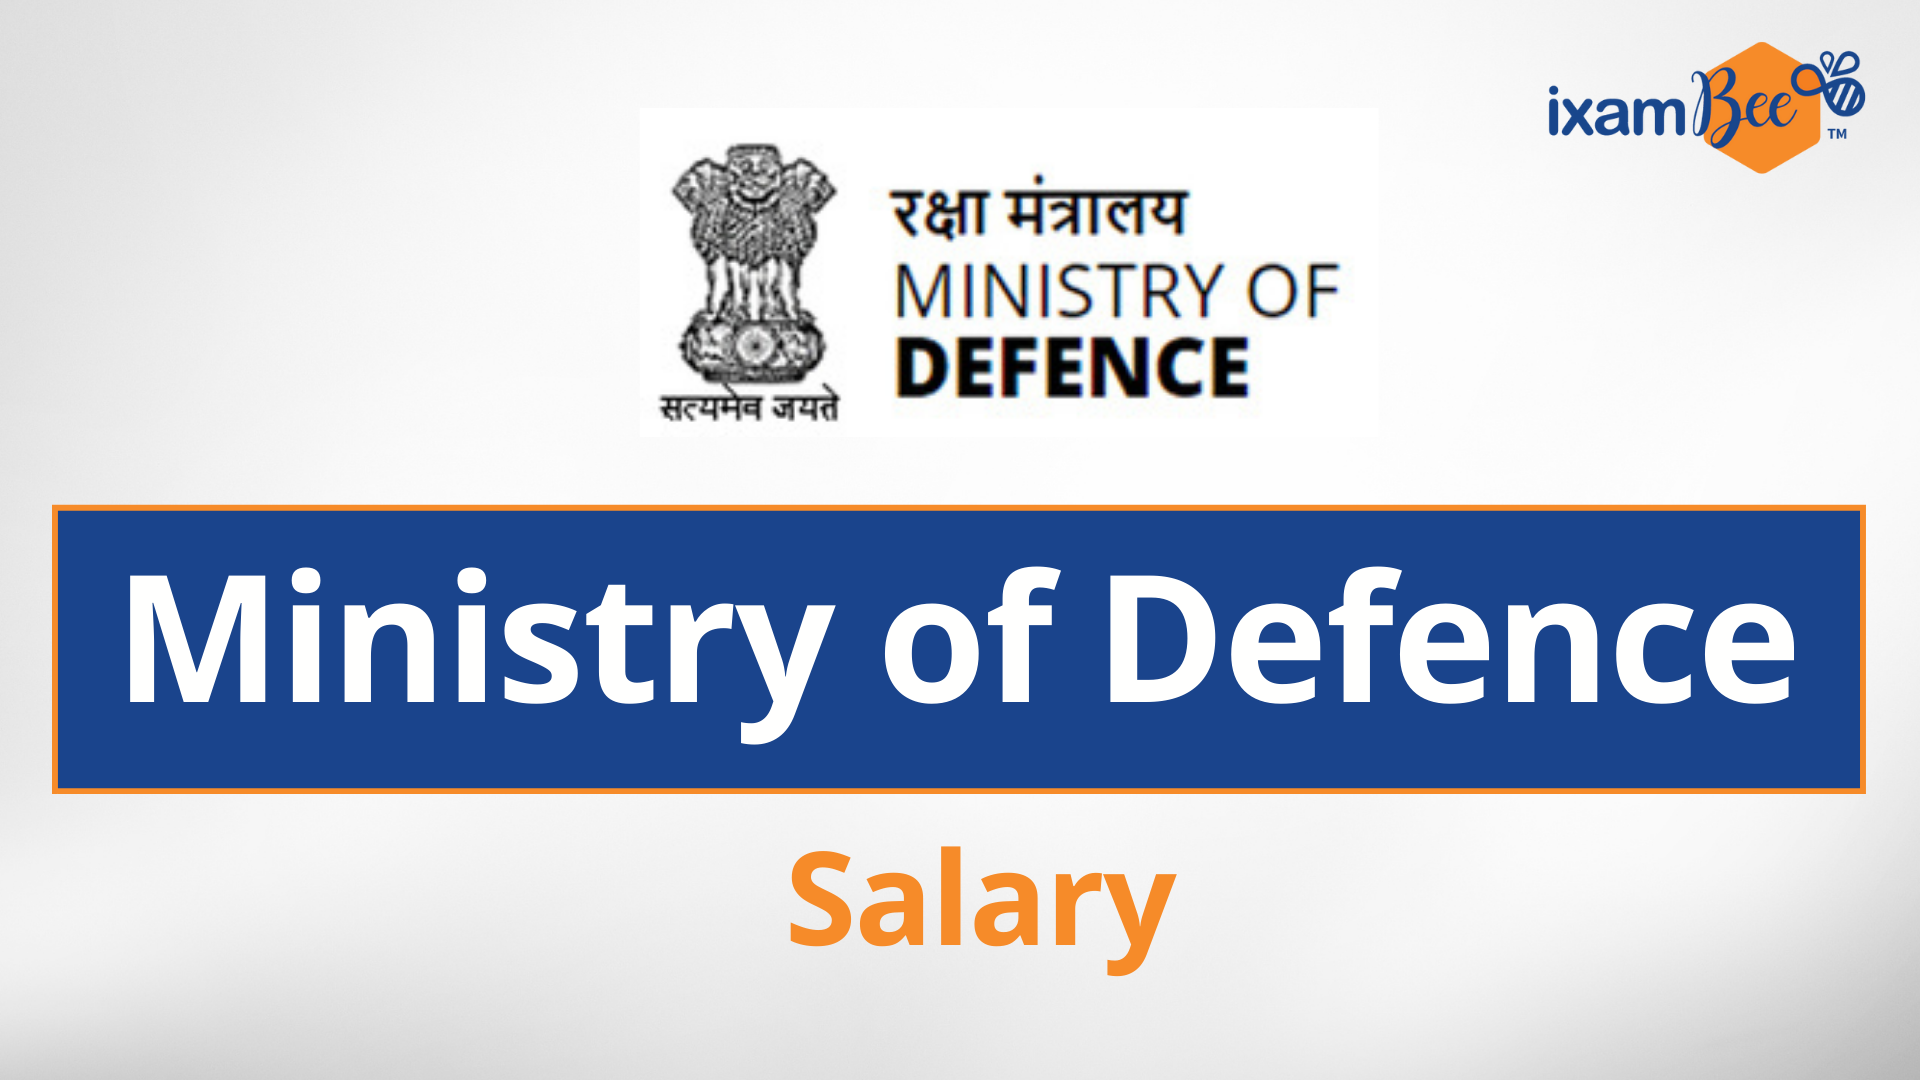 Ministry of Defence Salary 2021